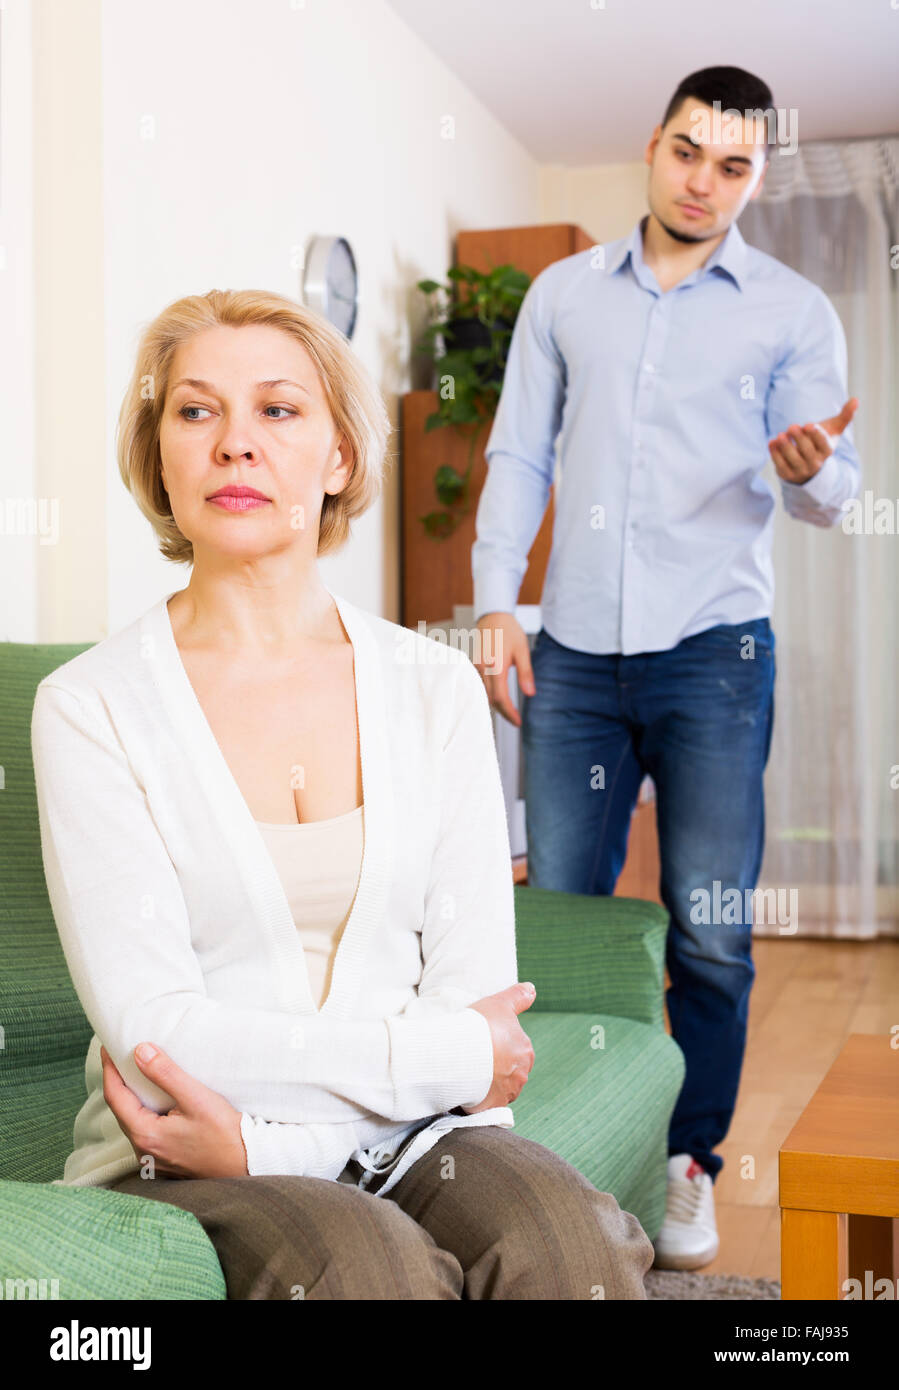 Mature woman younger man